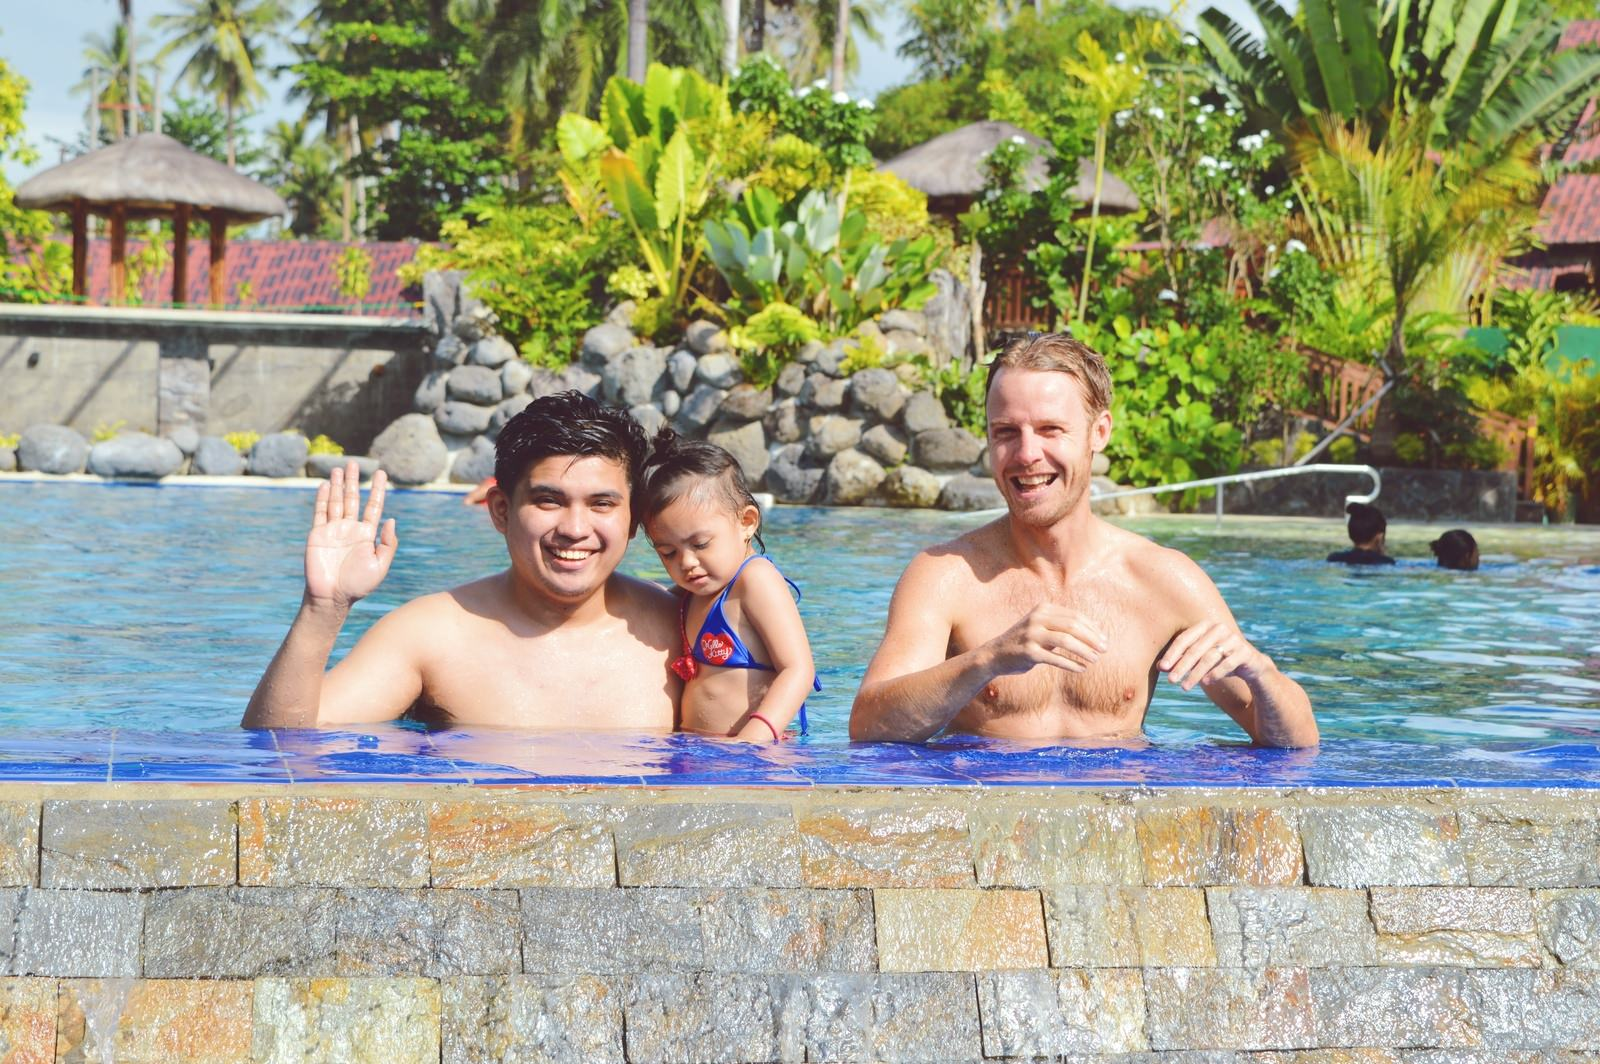 Family-Travel-Summer-Tips-10-Ways-to-Have-a-Memorable-Holiday-